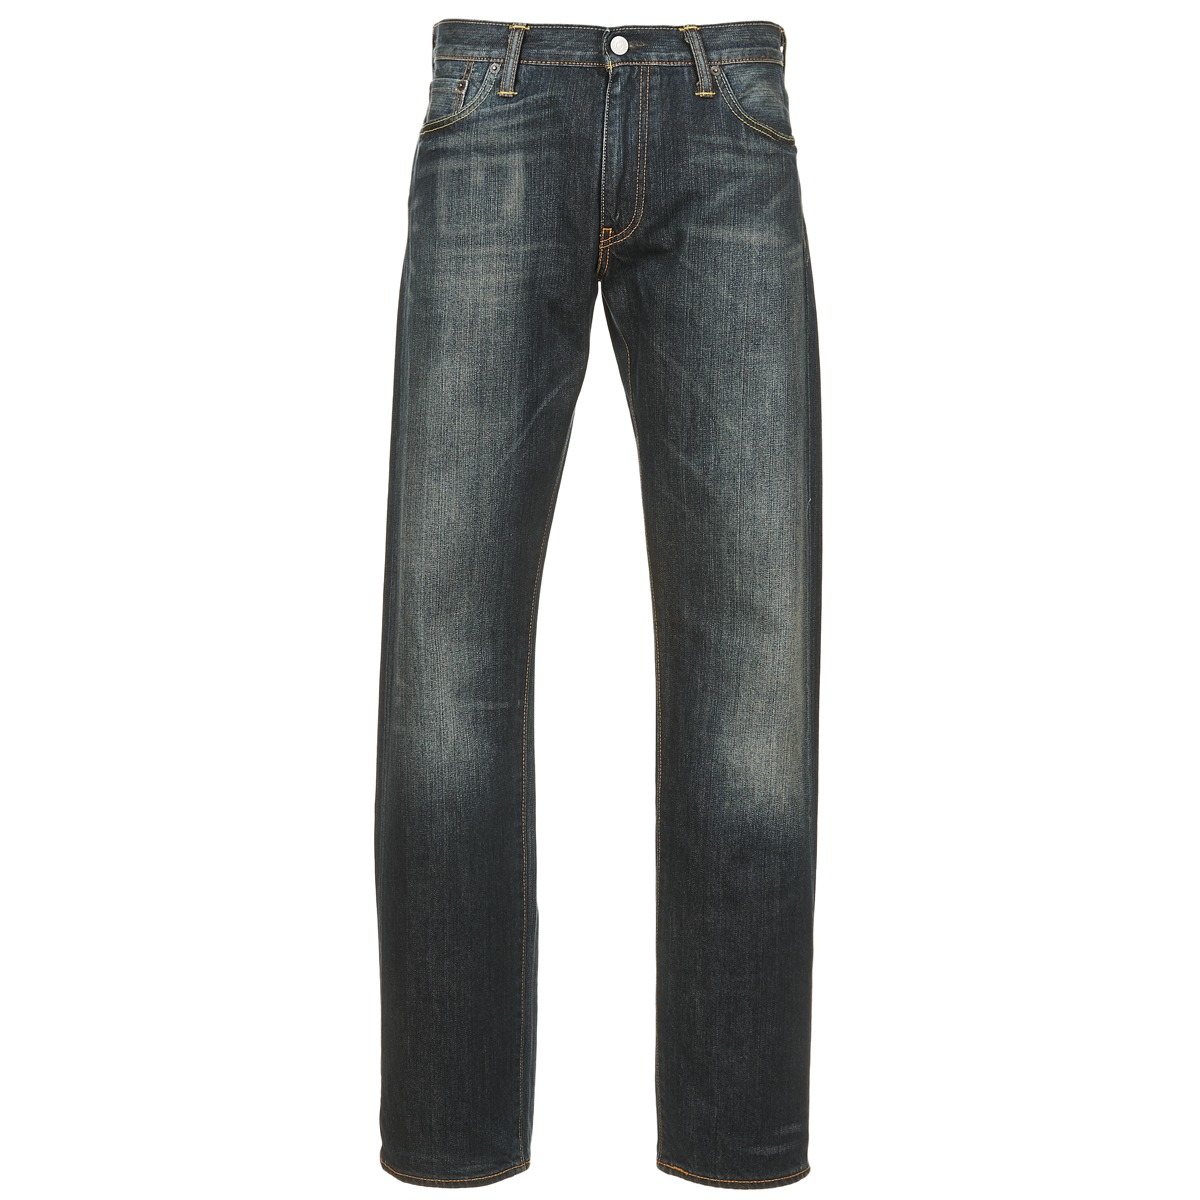 Levi's 504 REGULAR STRAIGHT FIT Bleu foncé